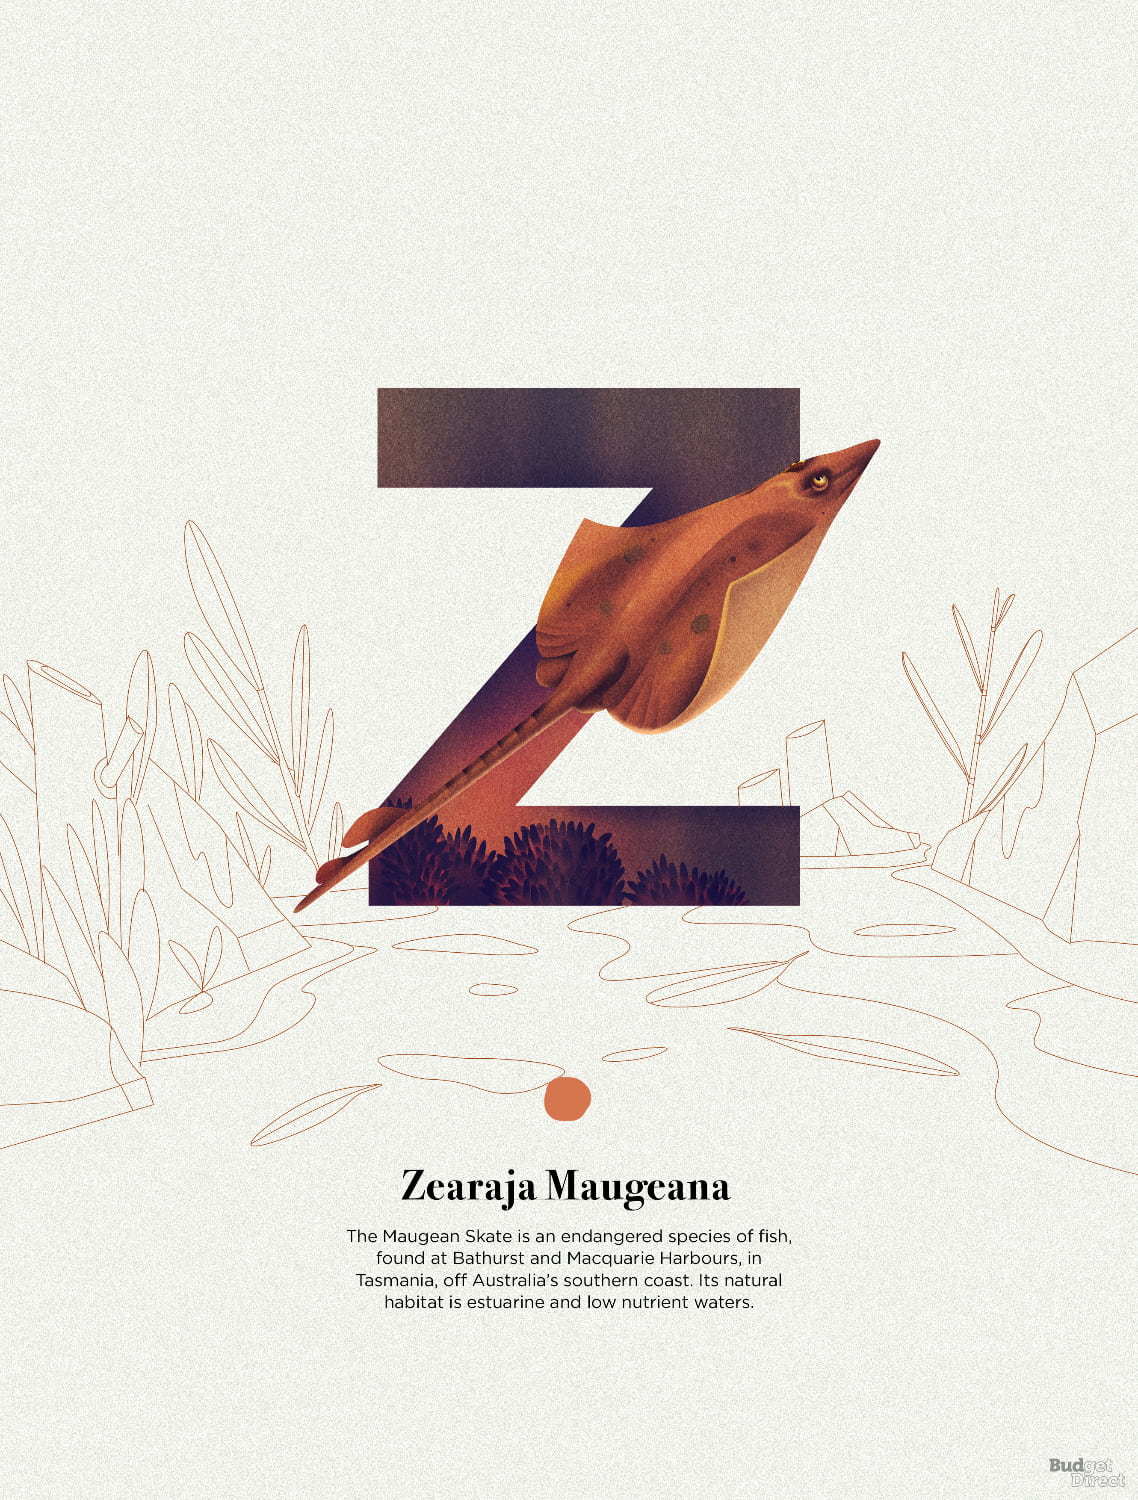 Z is for Zearaja maugeana